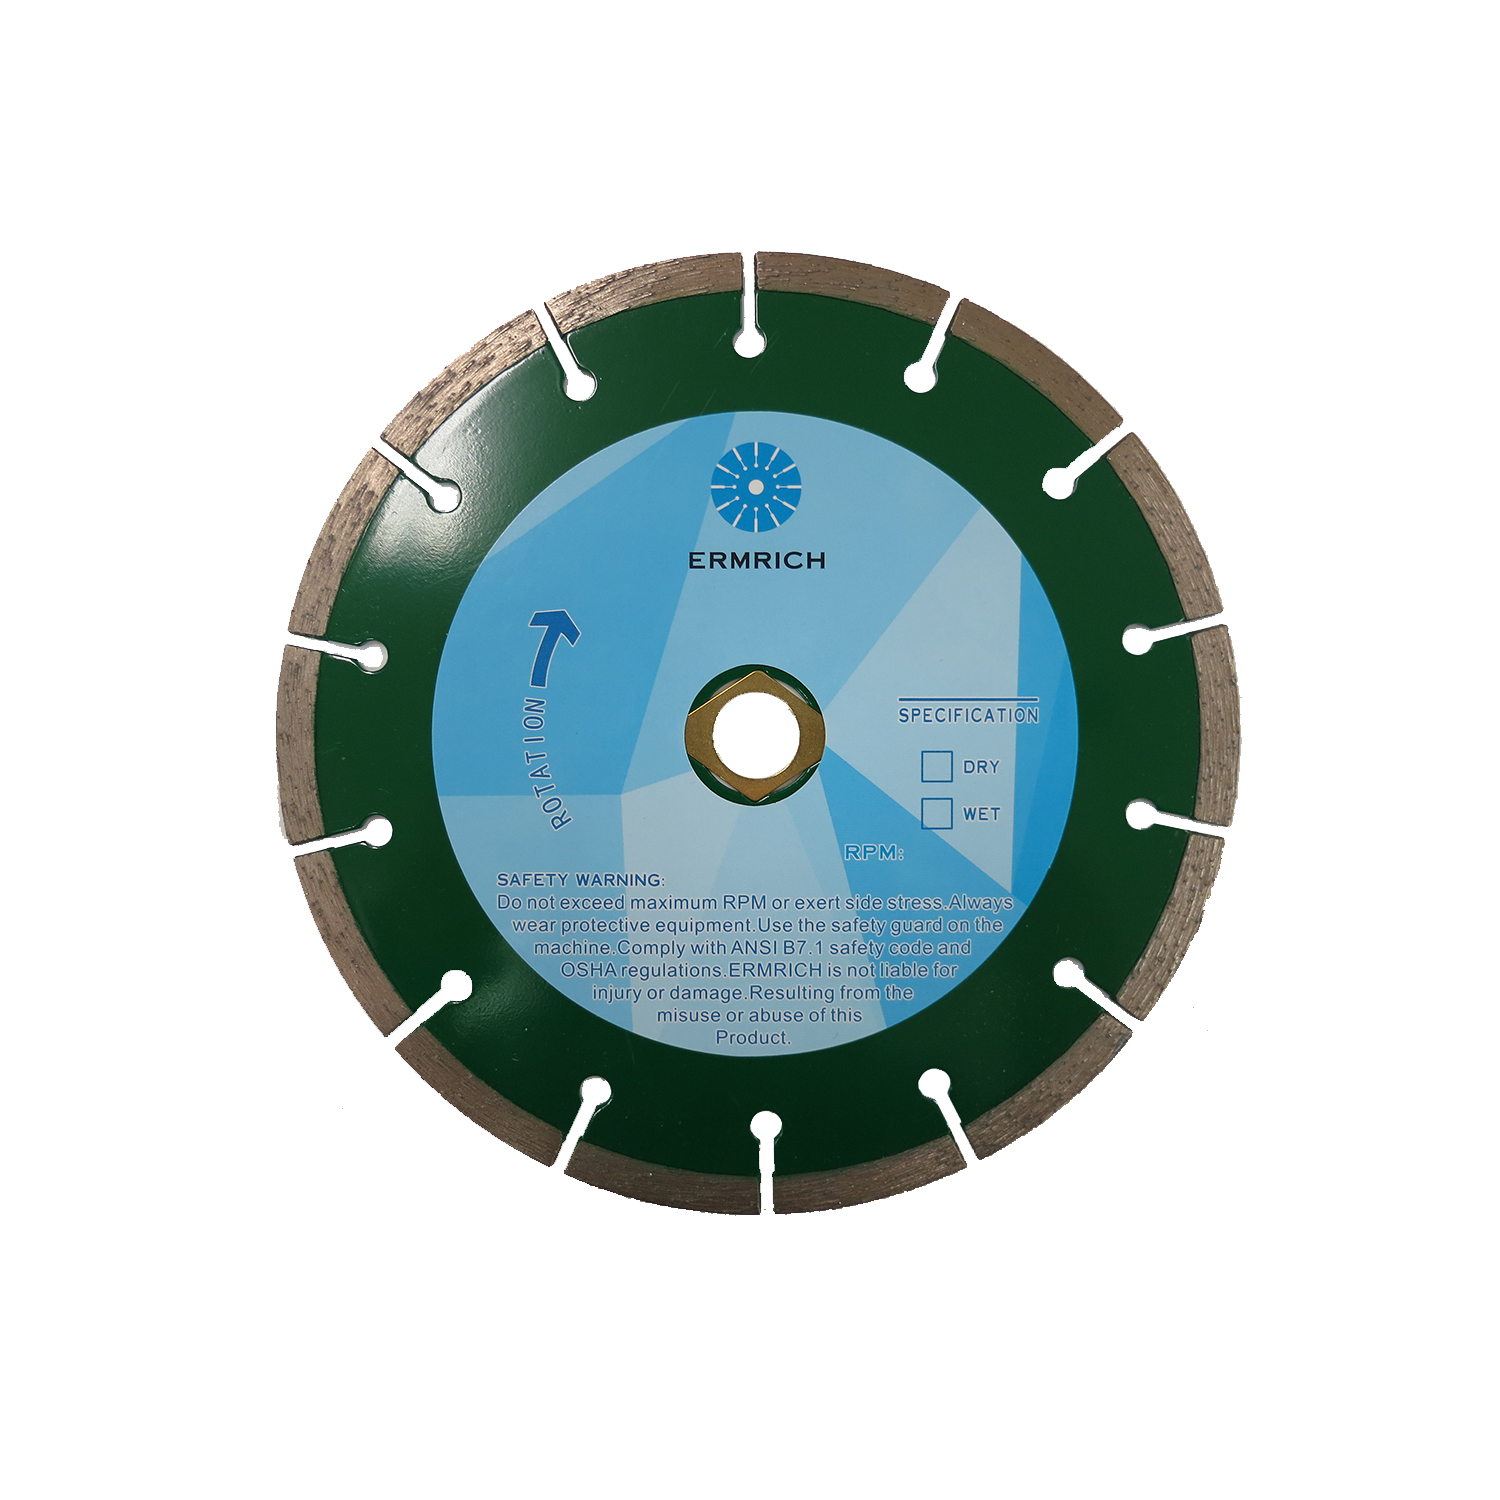 Flush & Flange Blade - Shaping + Cutting  2-in-1